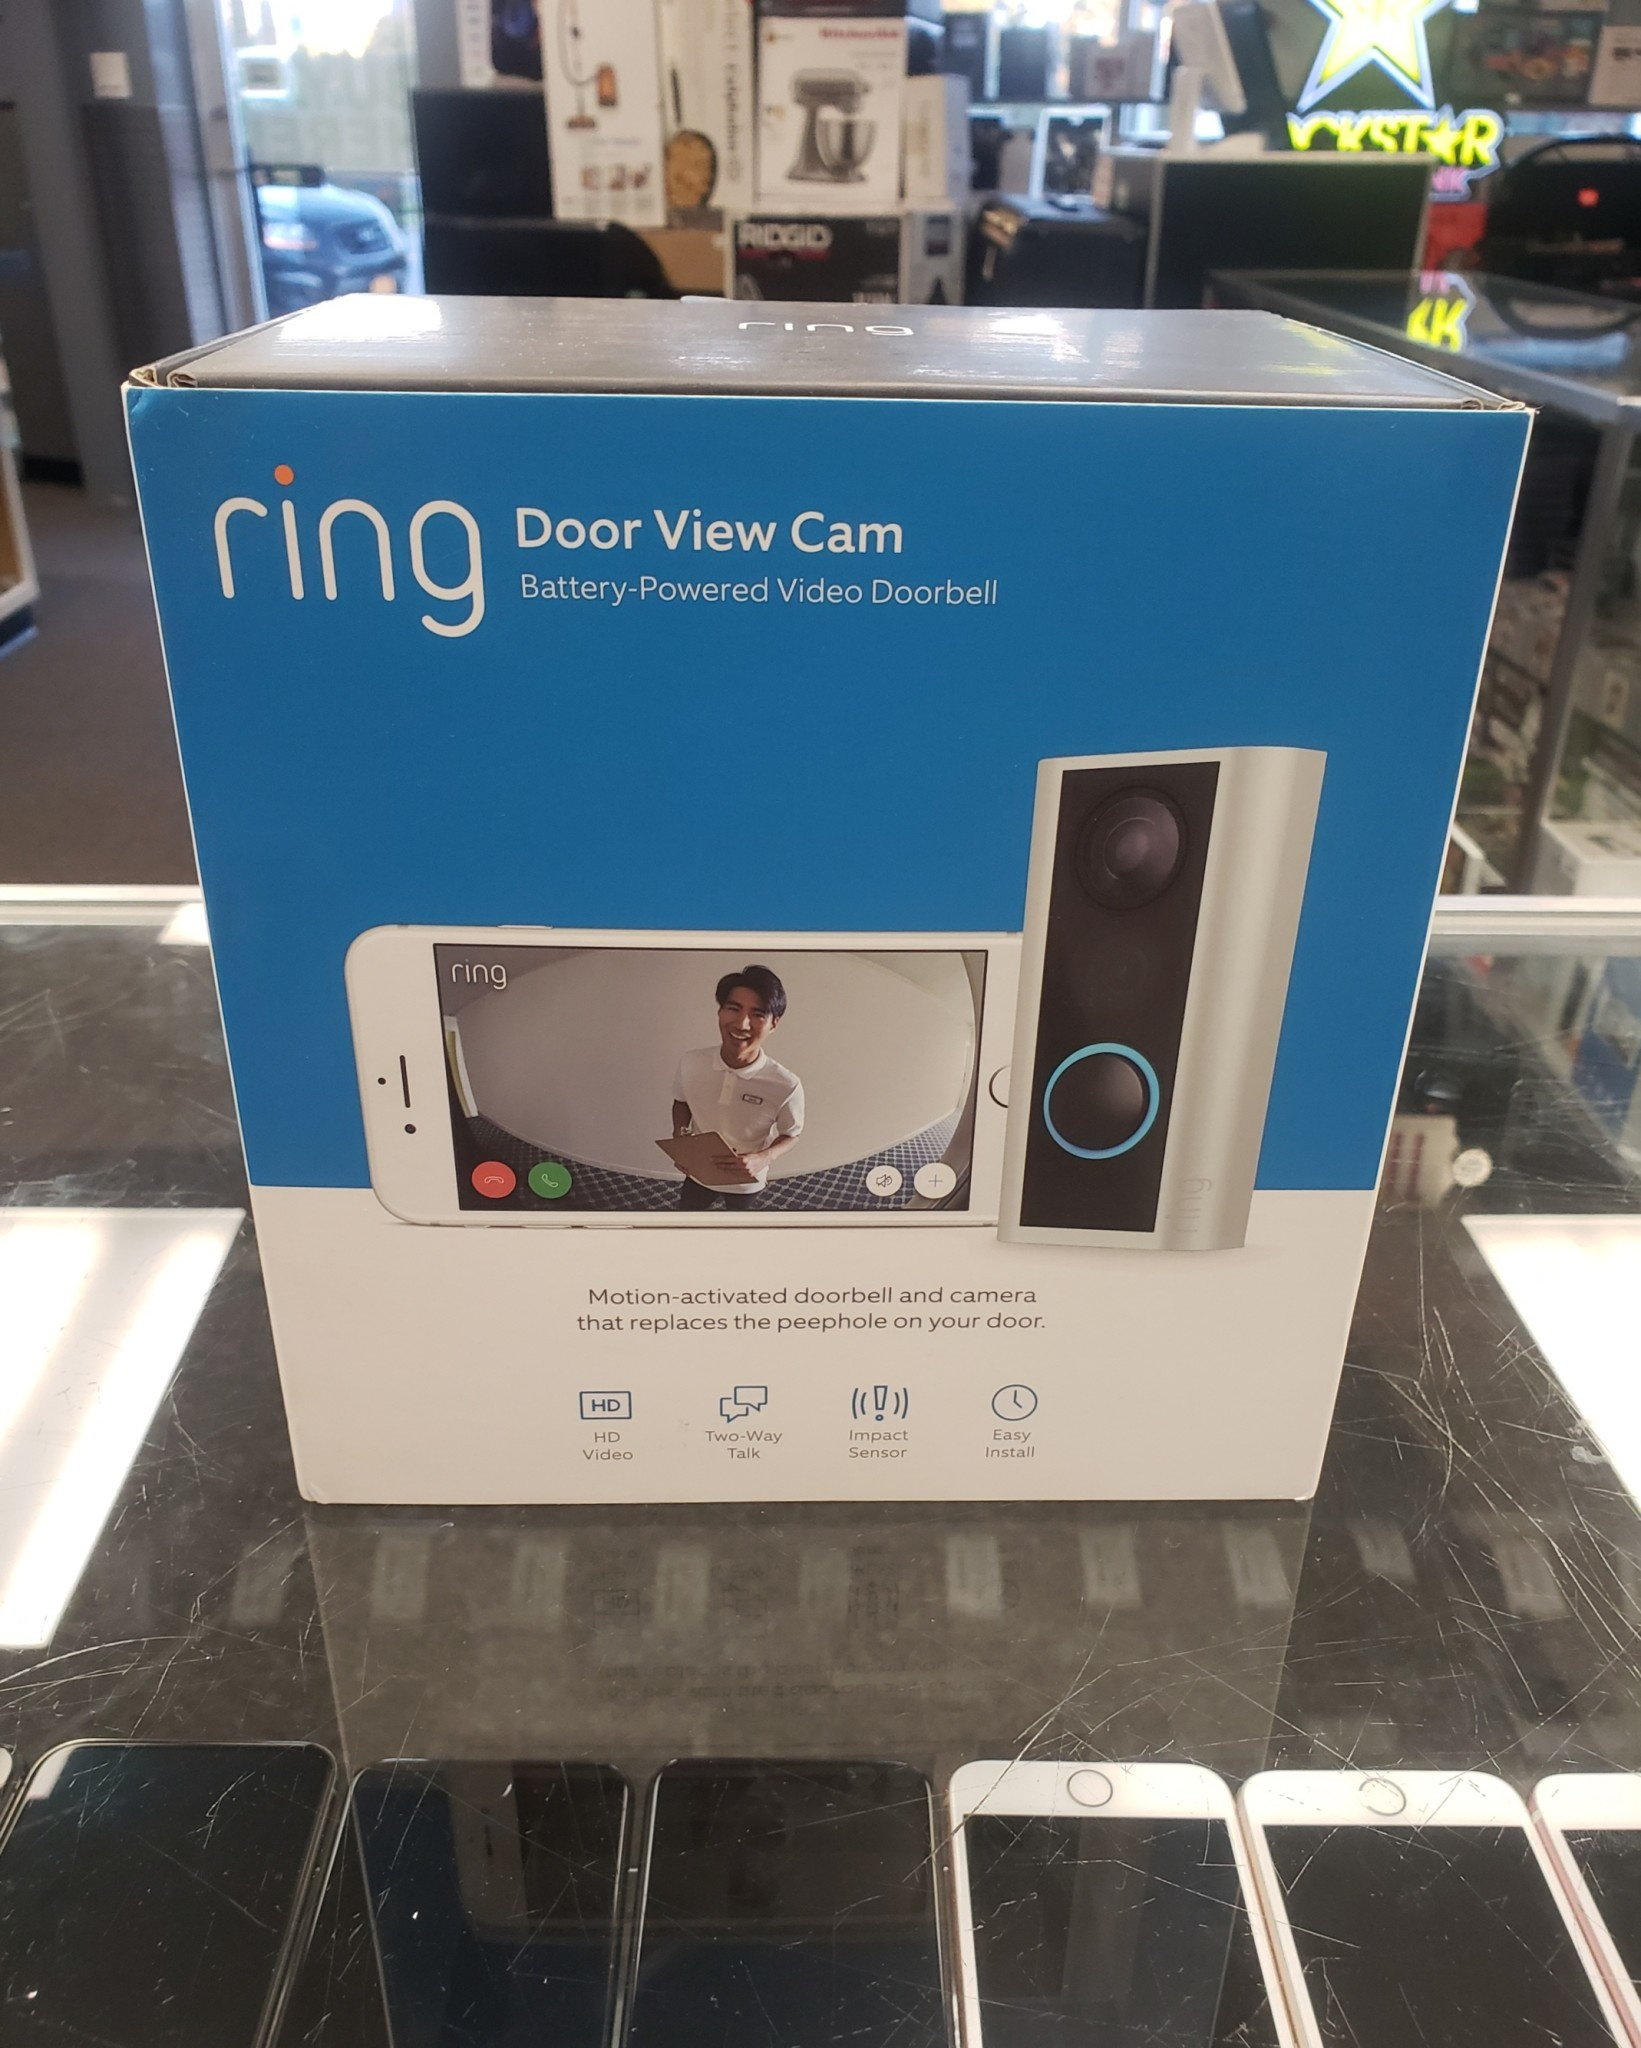 Ring Door View Cam - New in Box